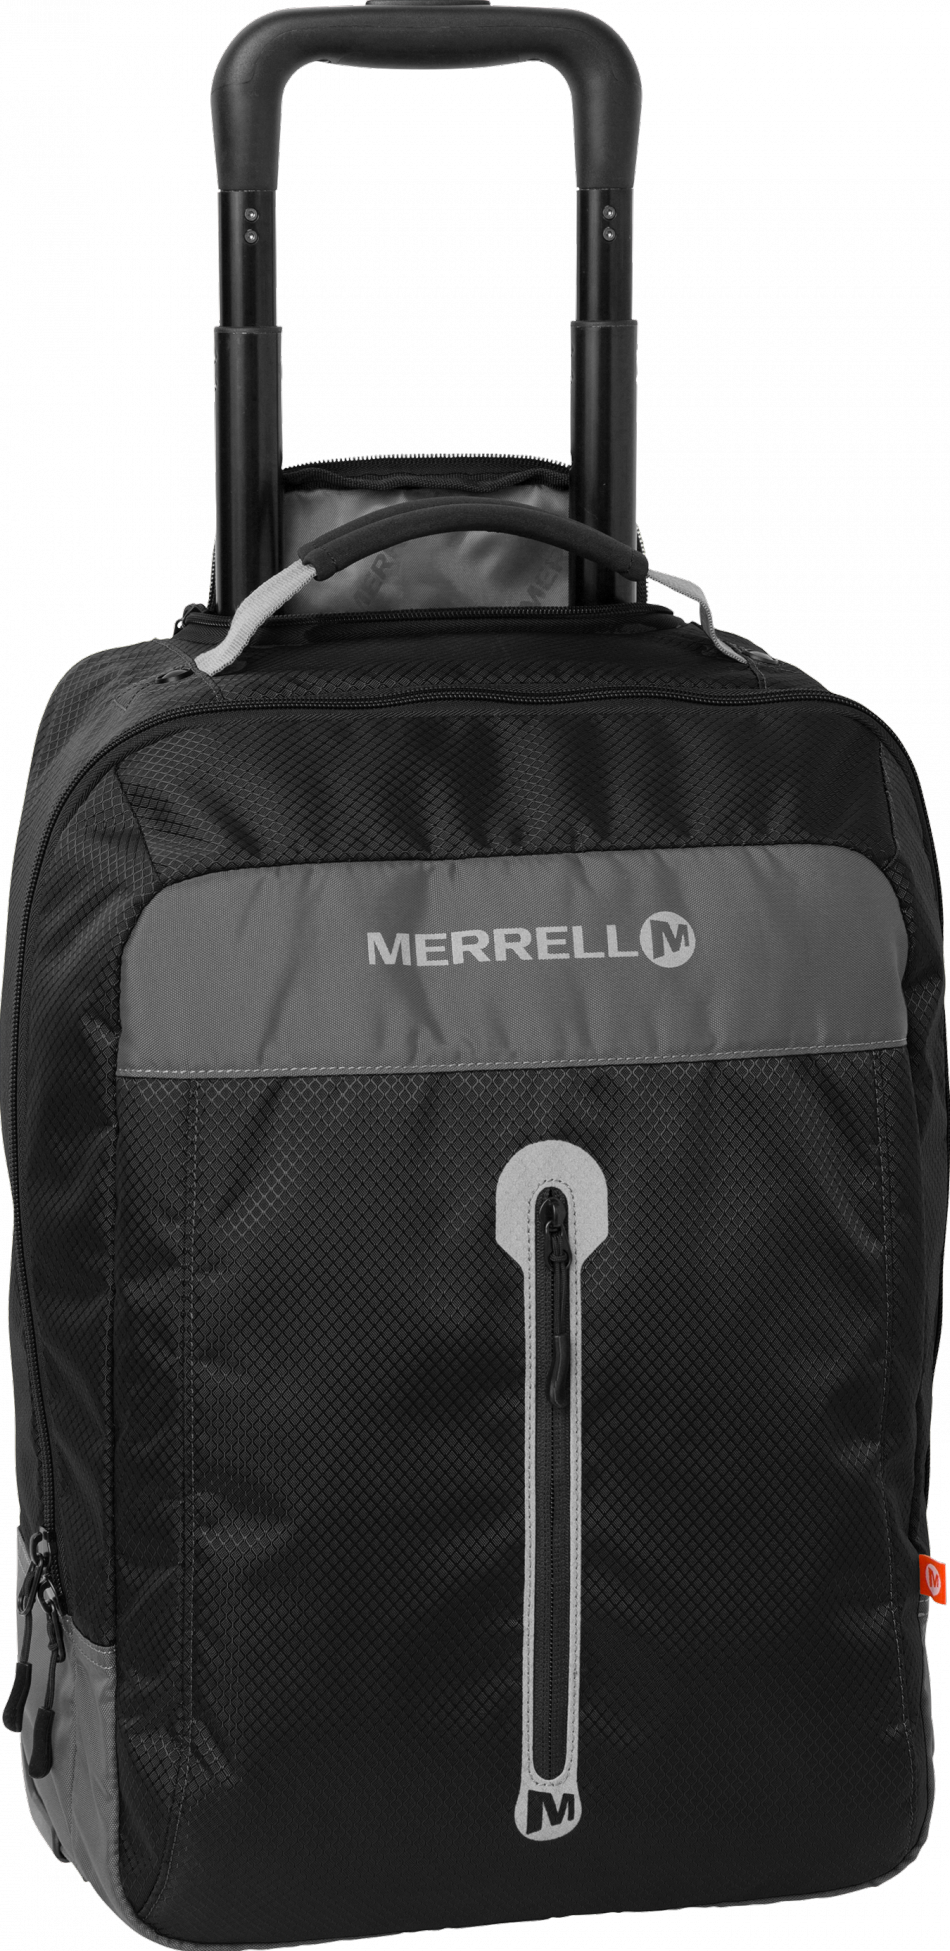 merrell bags products. Black Bedroom Furniture Sets. Home Design Ideas